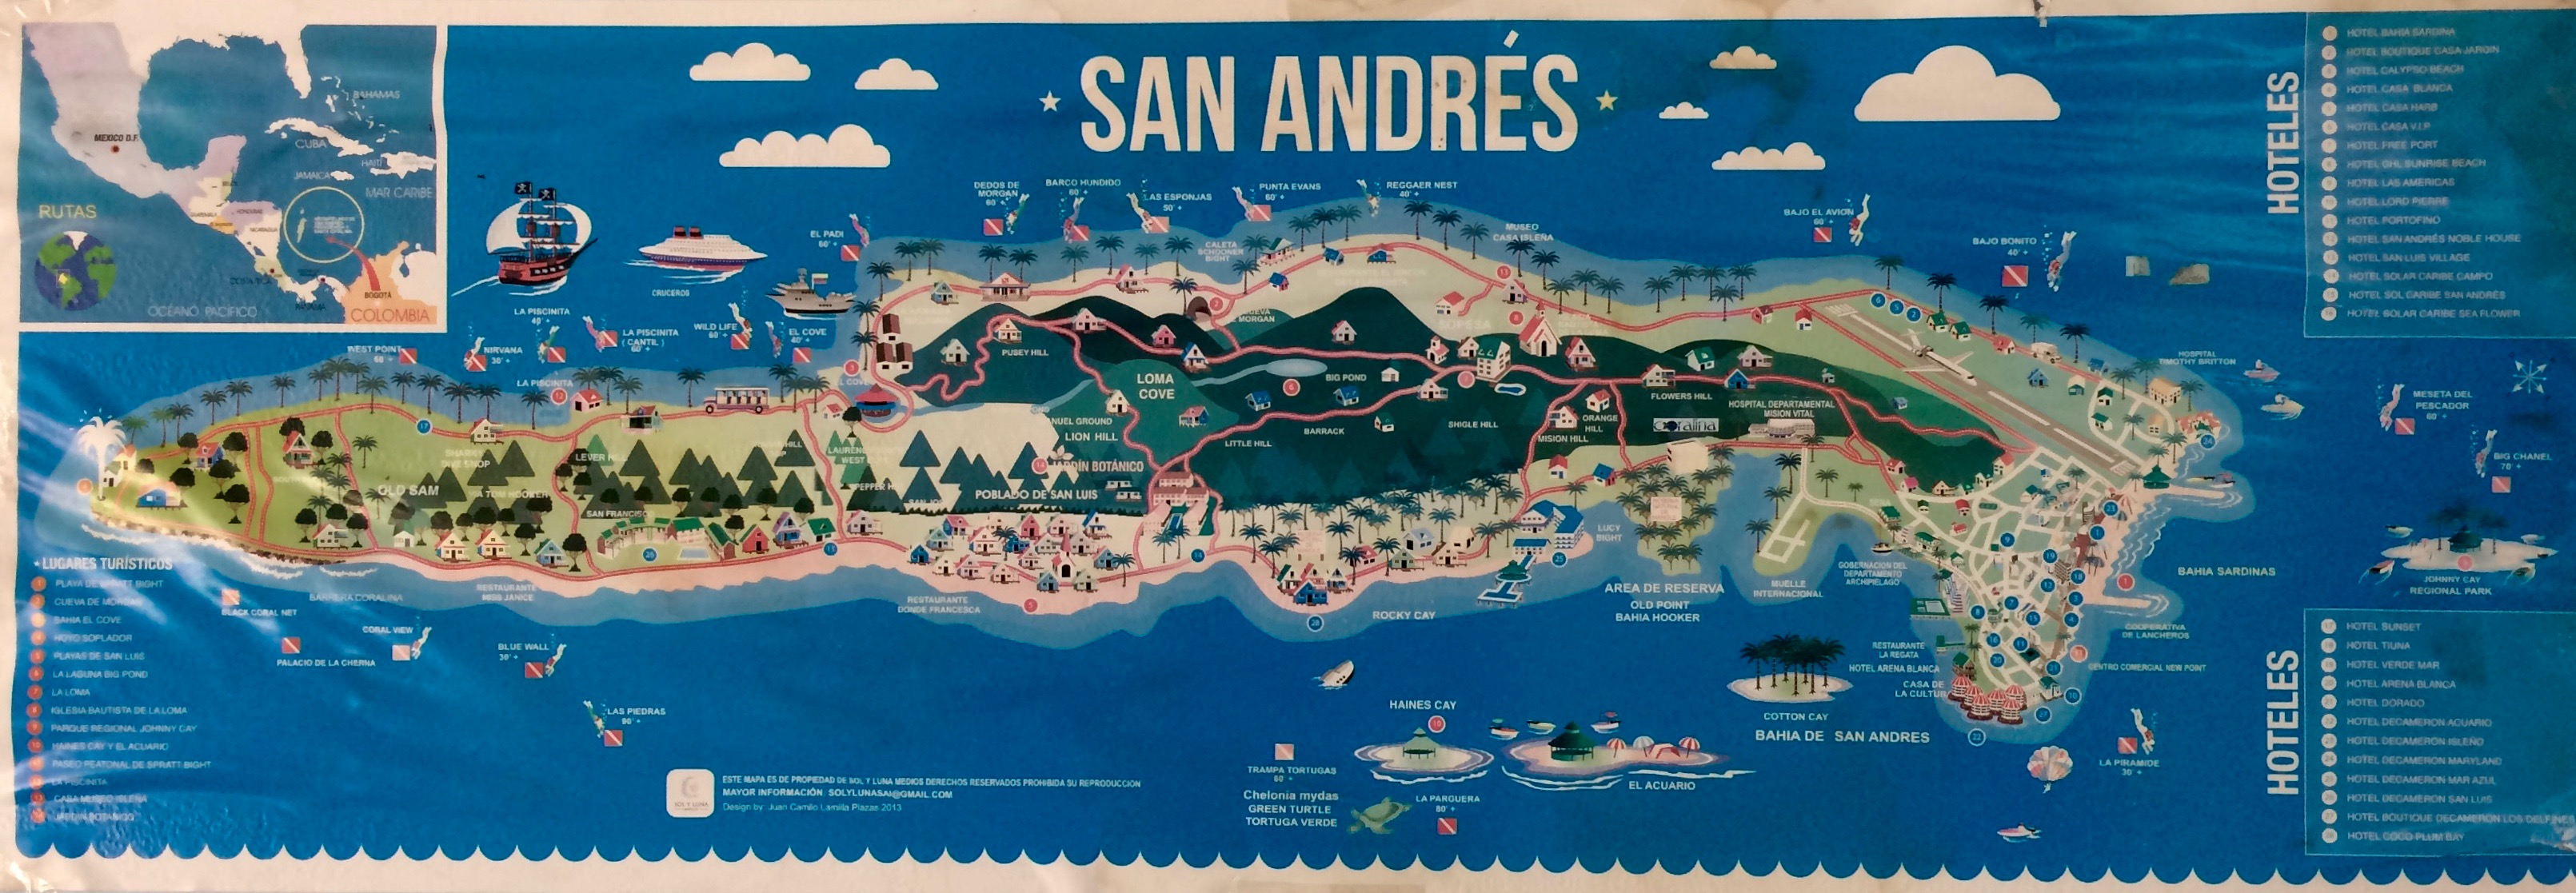 Introducing… Motos and More: Travels to San Andrés ...